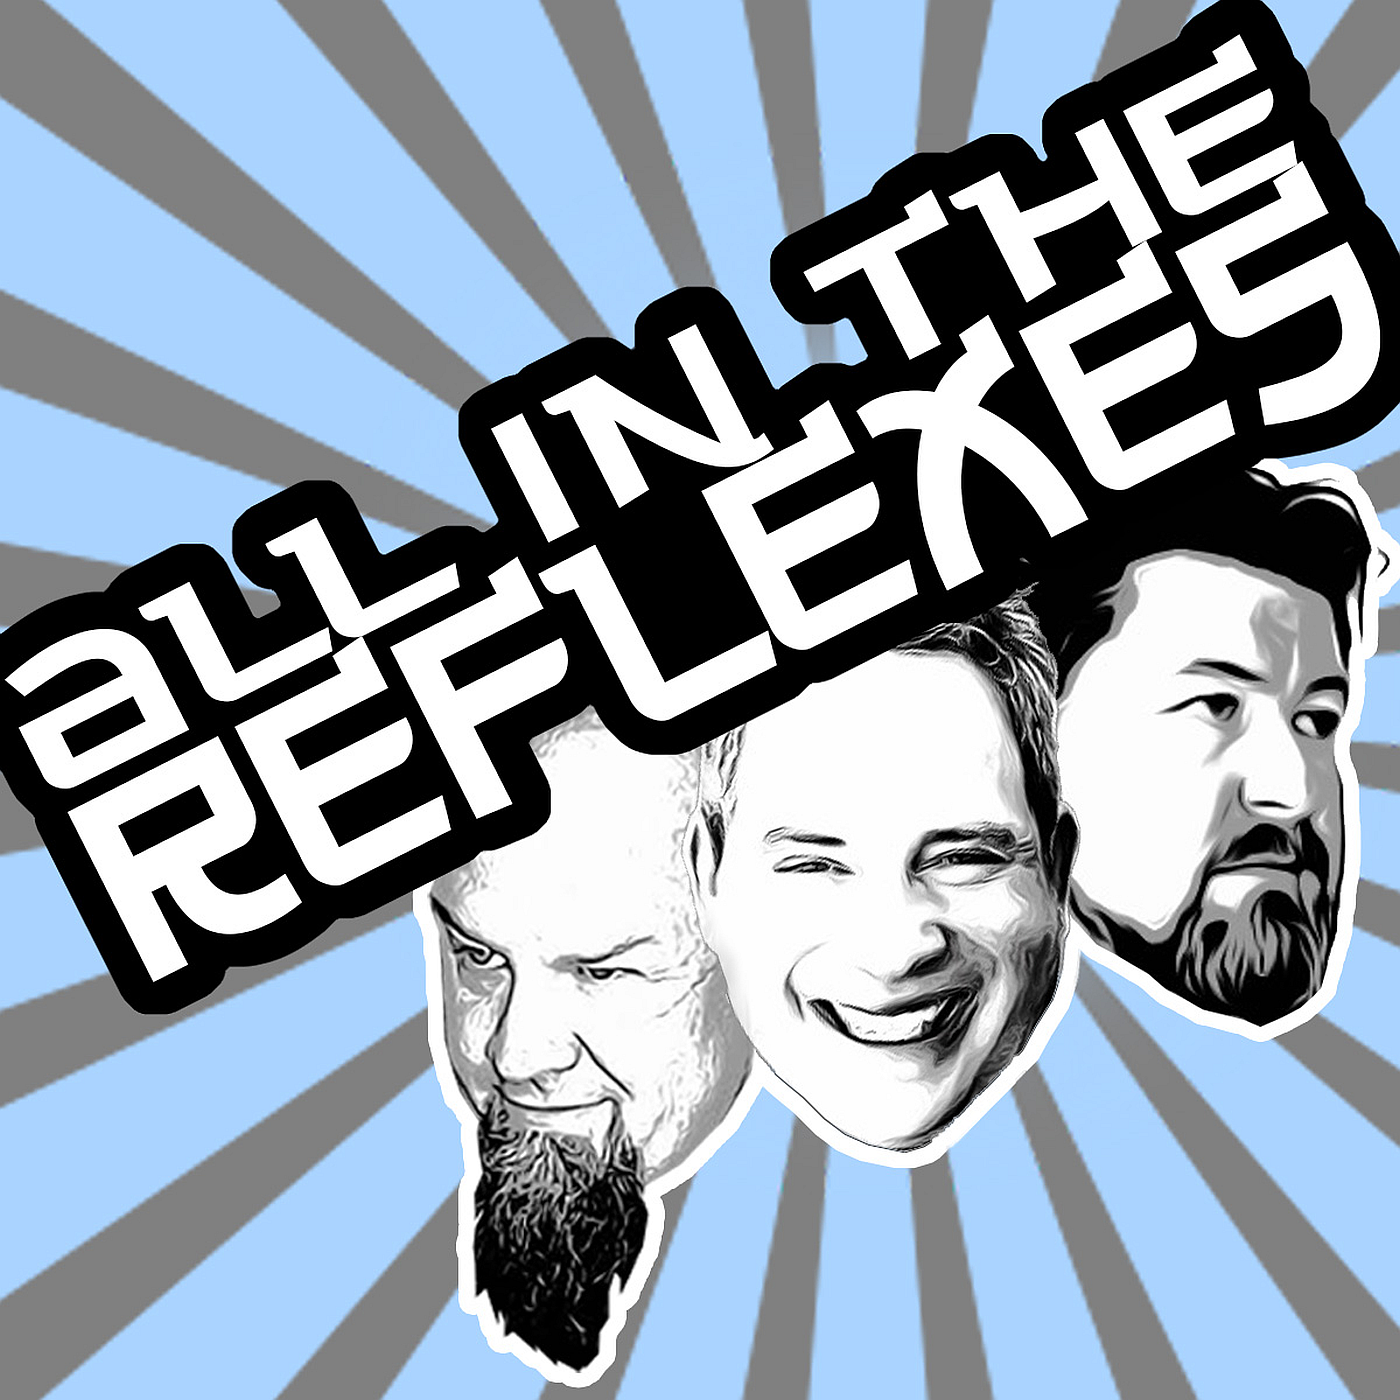 Episodes - All in the Reflexes